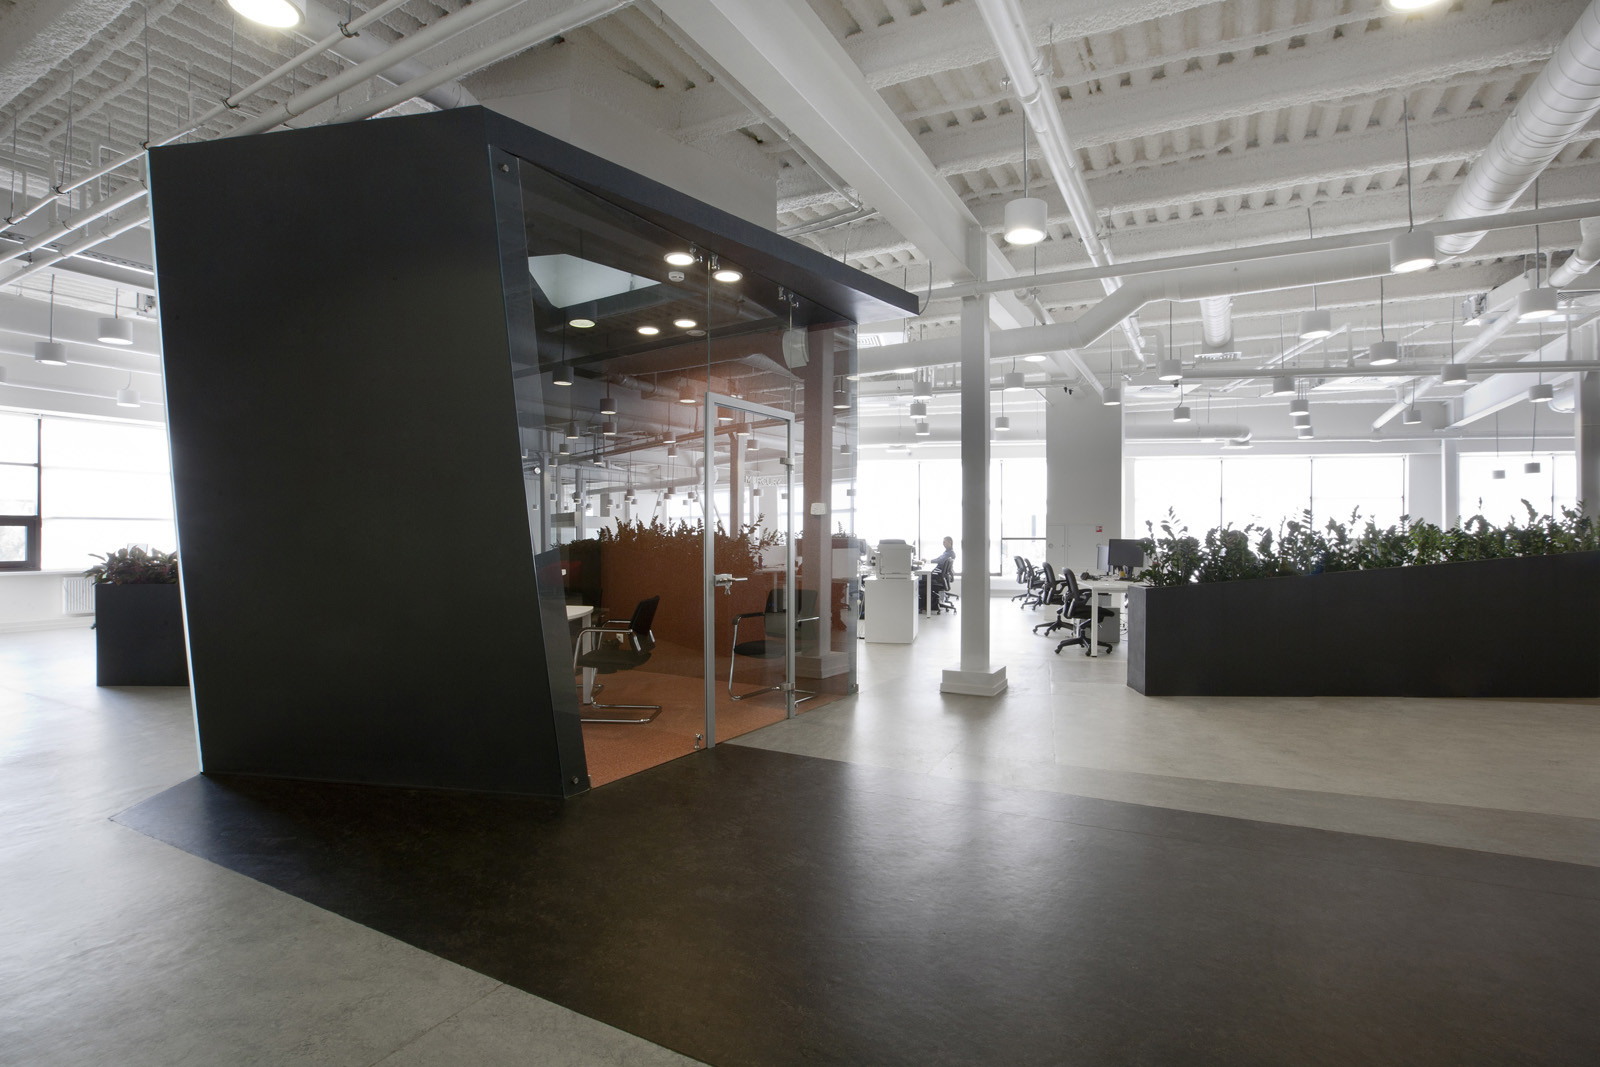 Iponweb Company Office / Za Bor Architects, © Peter Zaytsev